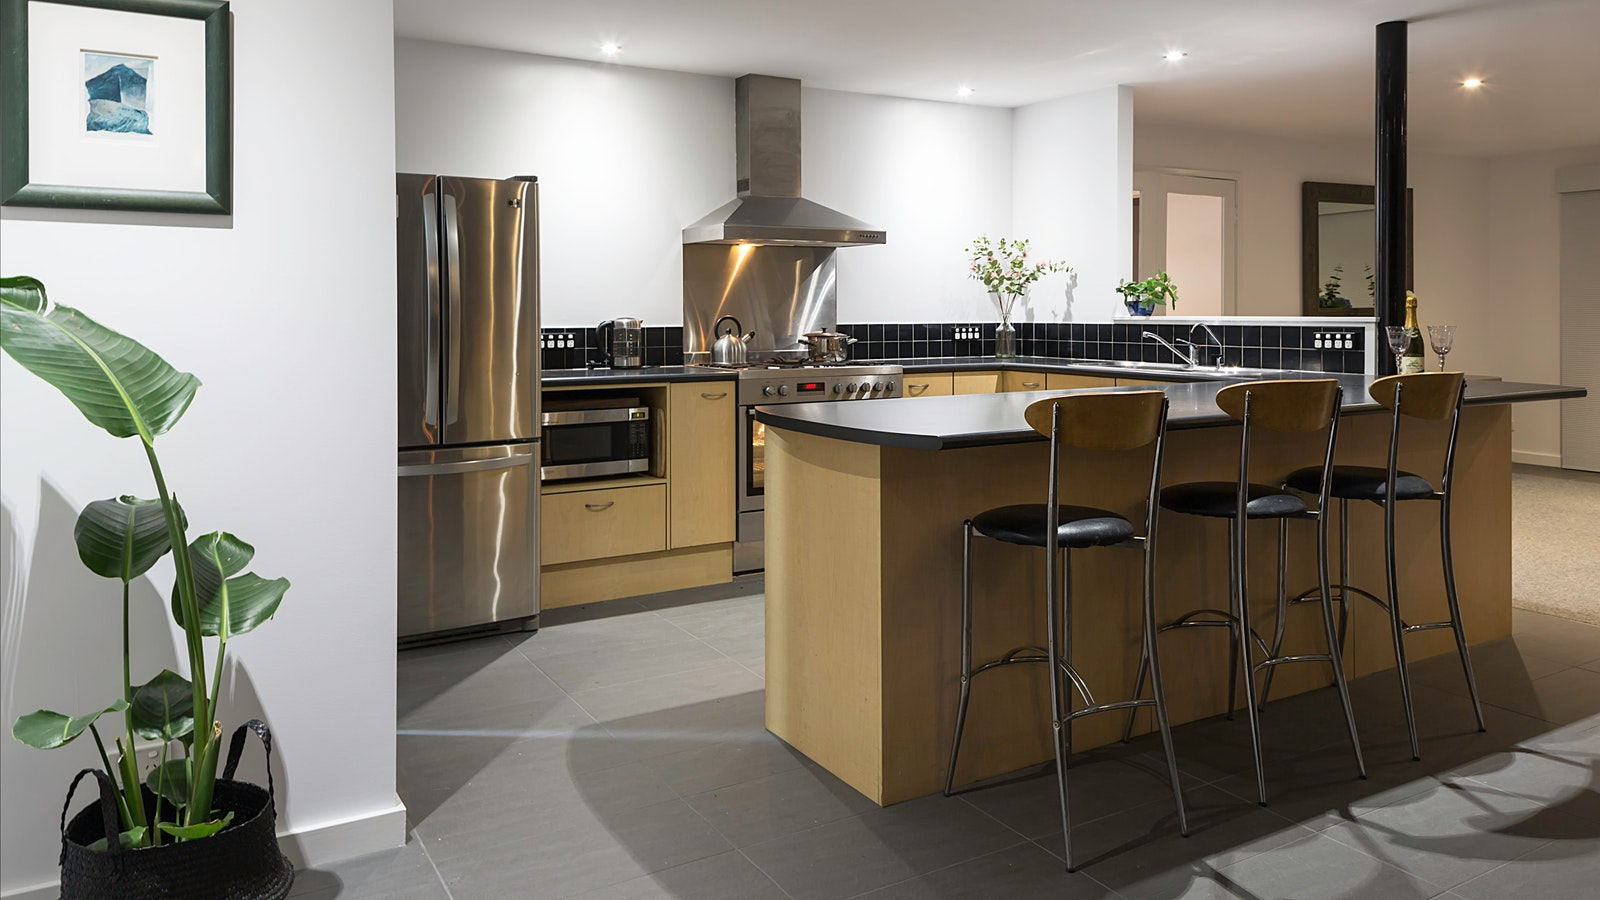 Cooking up a storm in this spacious kitchen